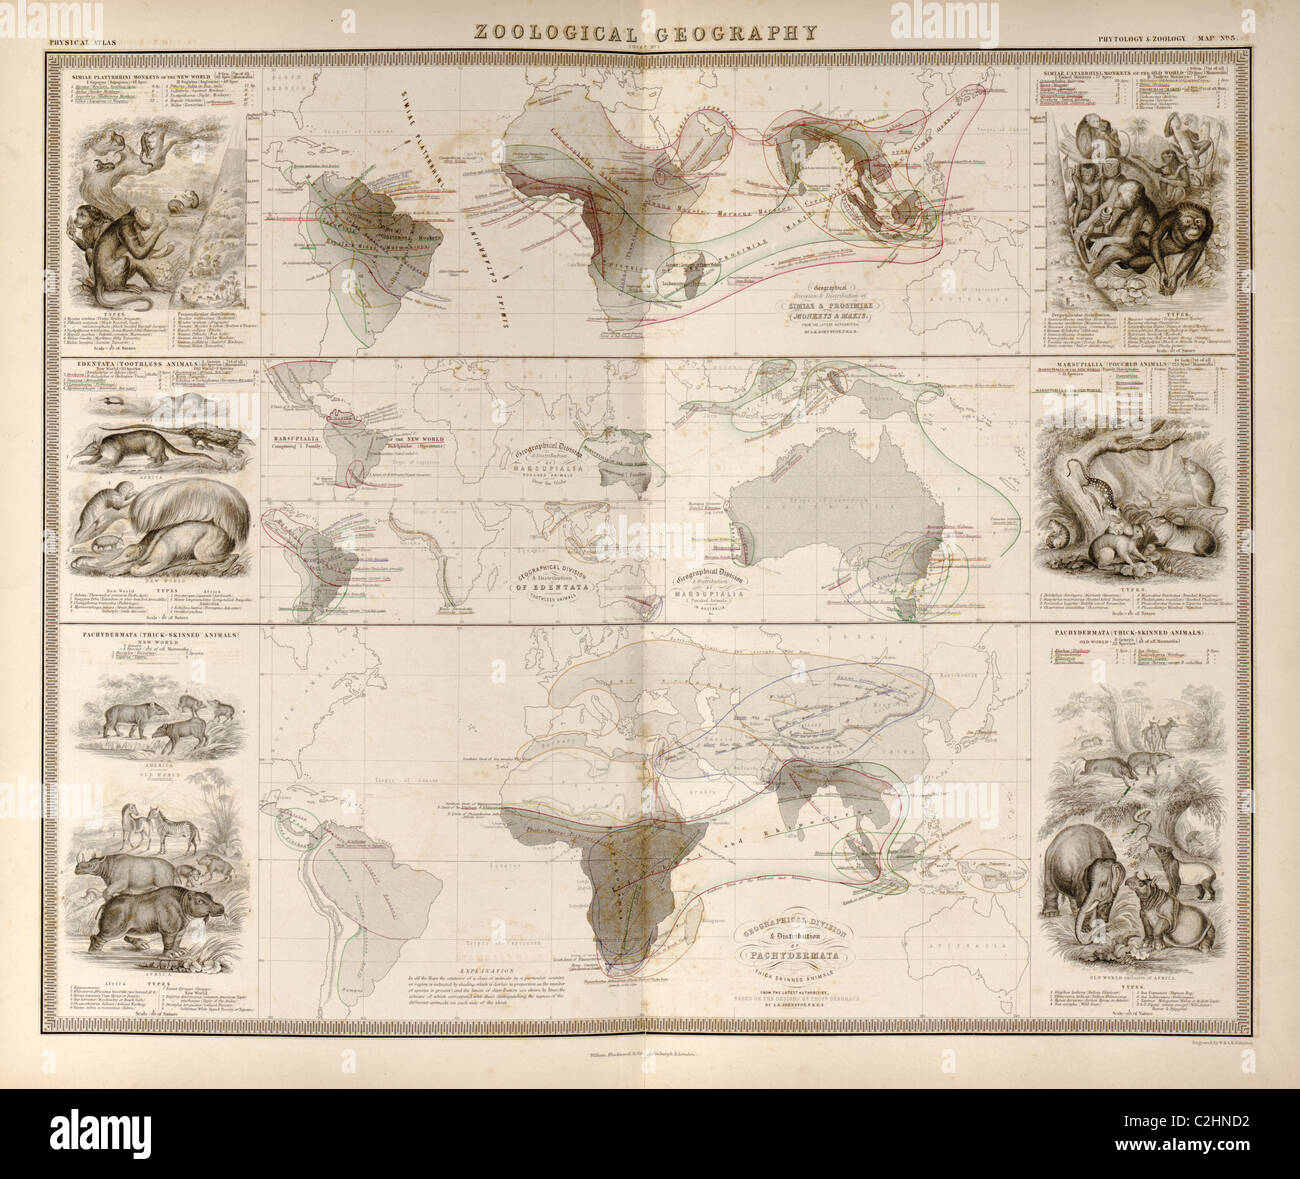 Zoological Geography; Birds of the World; Primates, Pachydrms, Marsupials & Primates - Stock Image